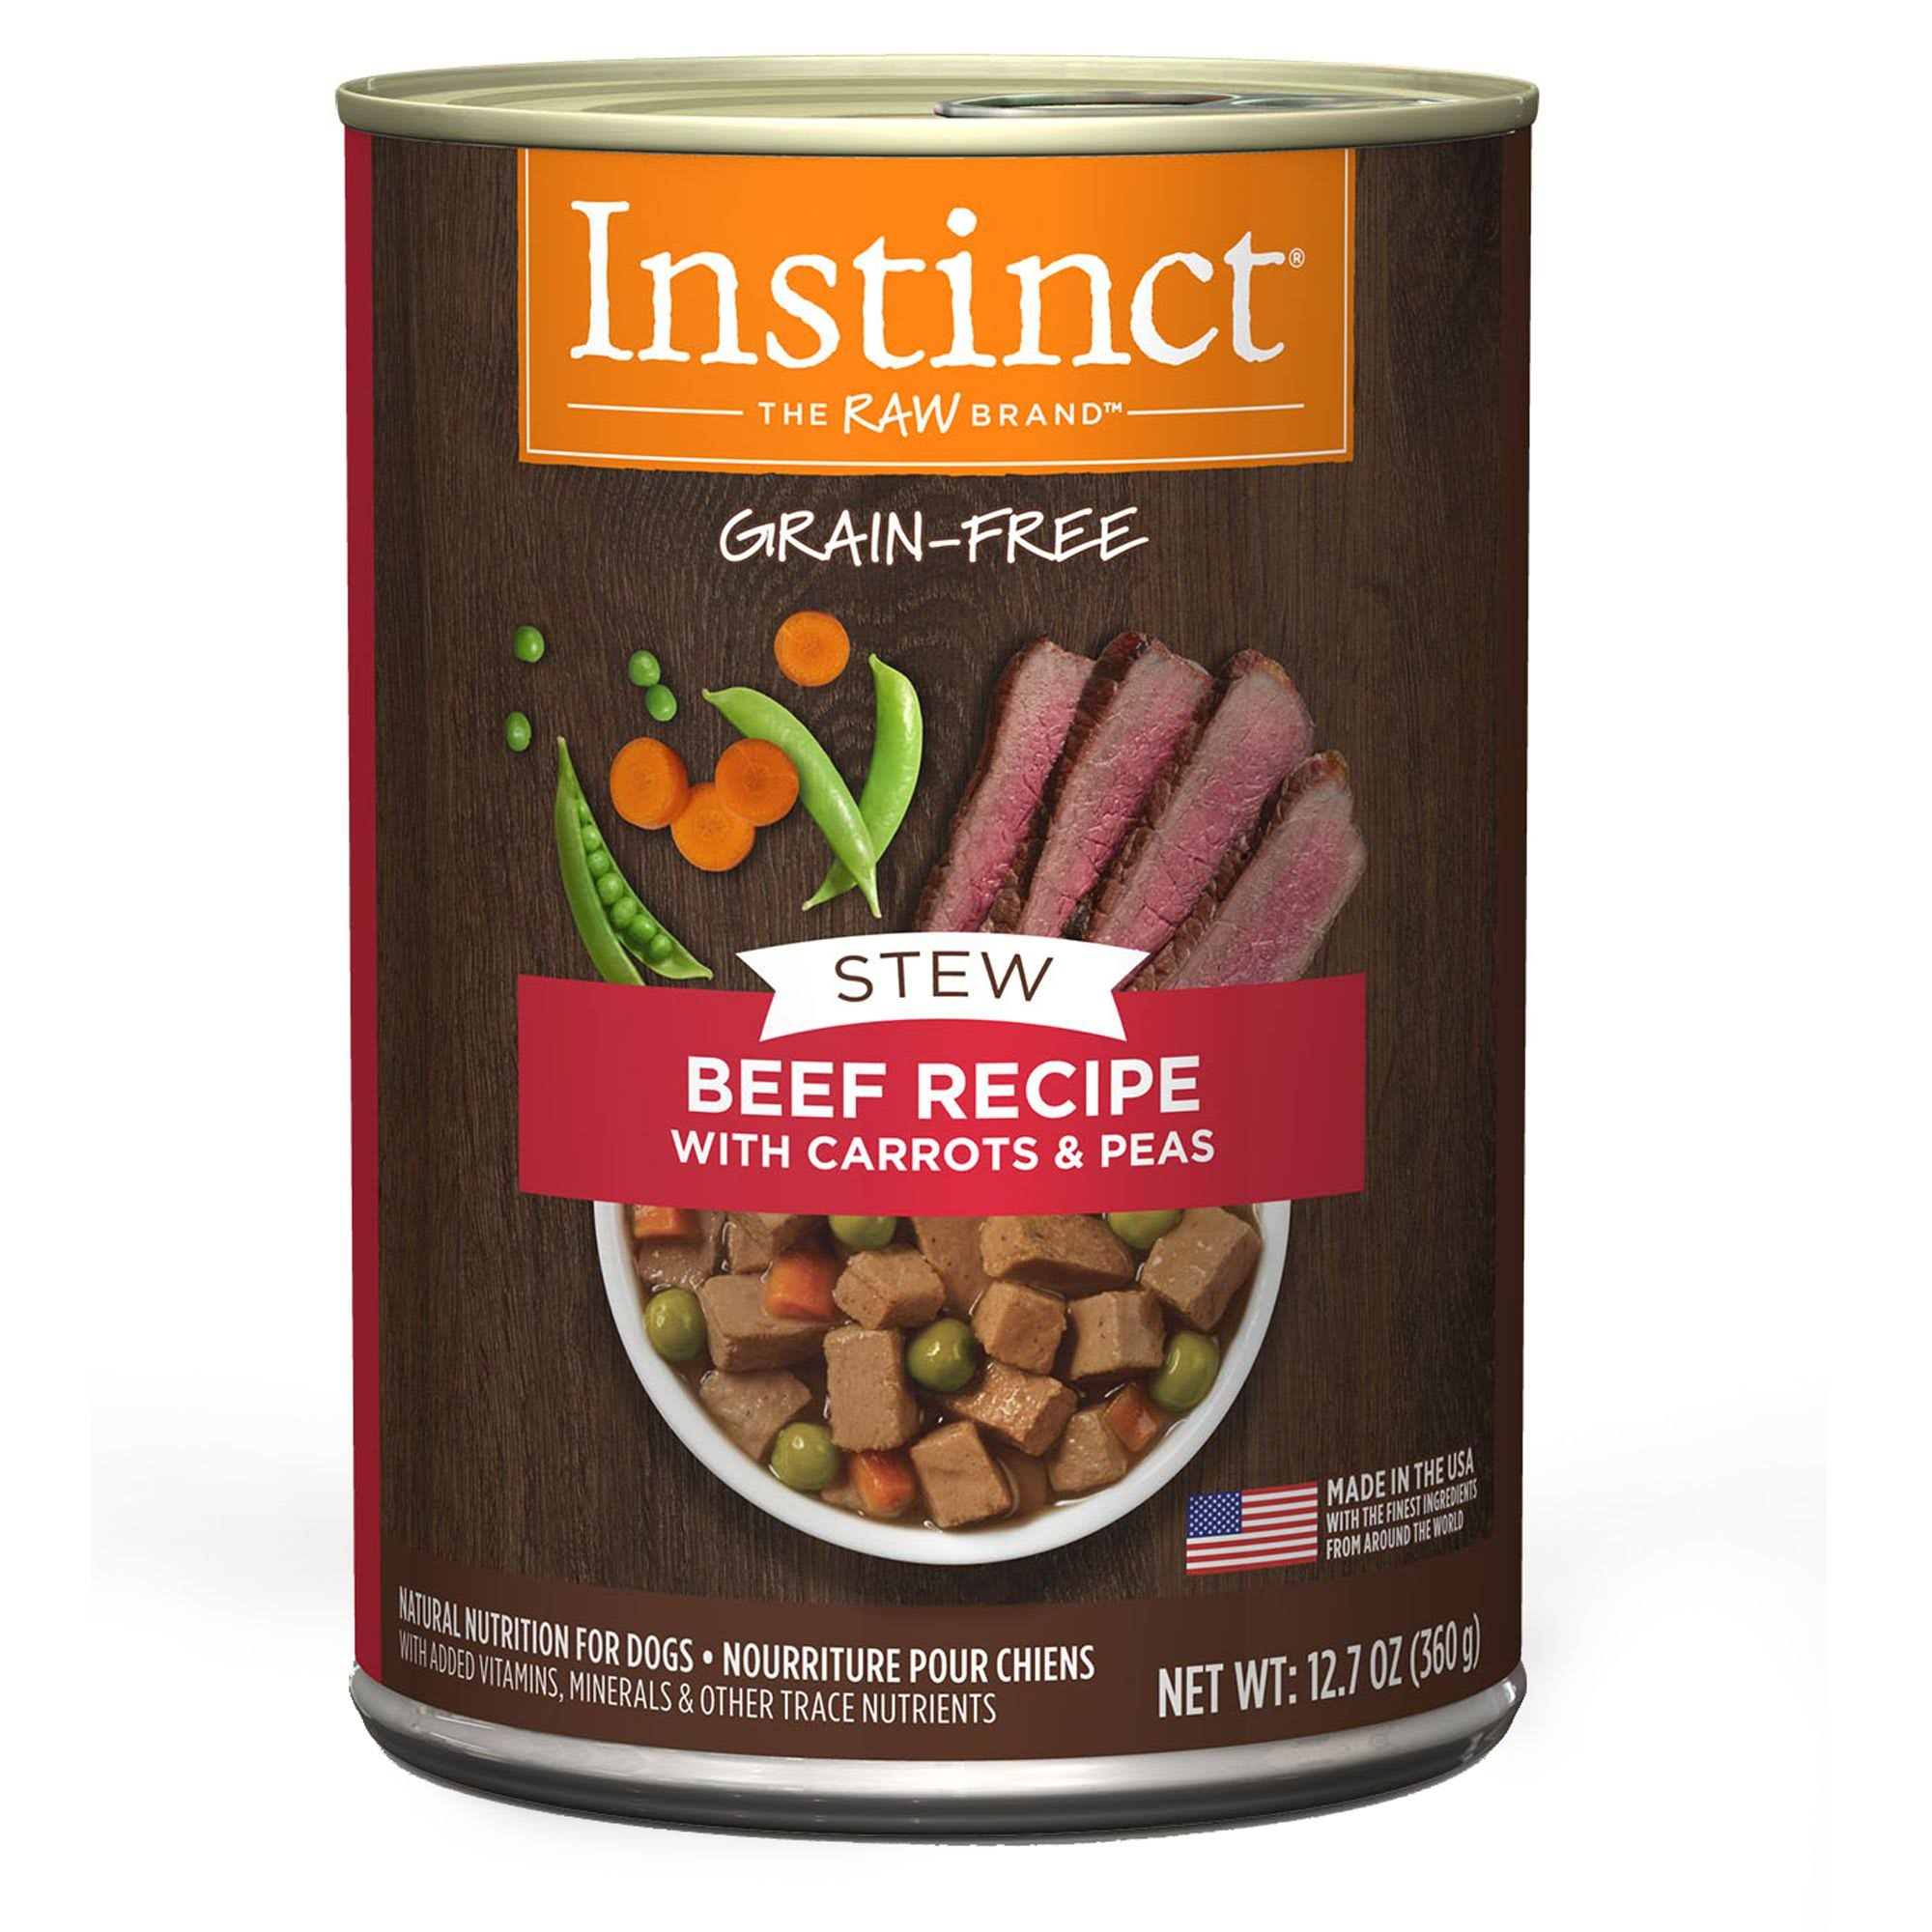 Instinct Stew Dog Food - Beef, 12.7oz